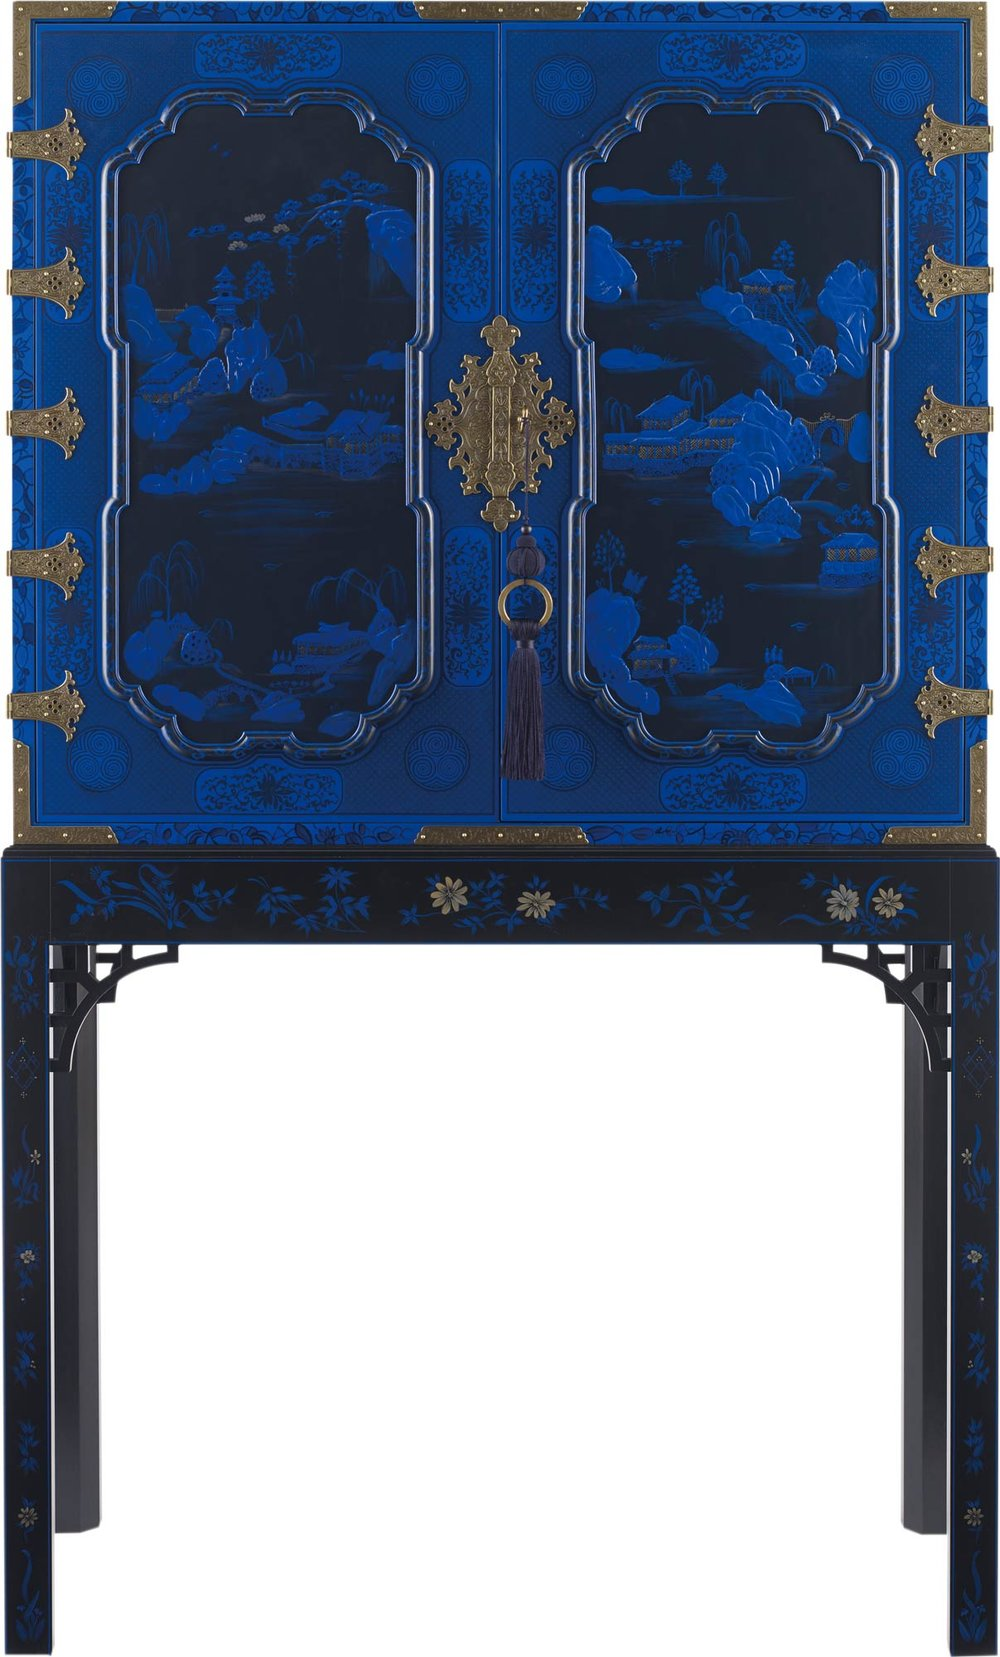 Baker Furniture George III Oriental Lacquer Cabinet $82,110 At Brougham Interiors